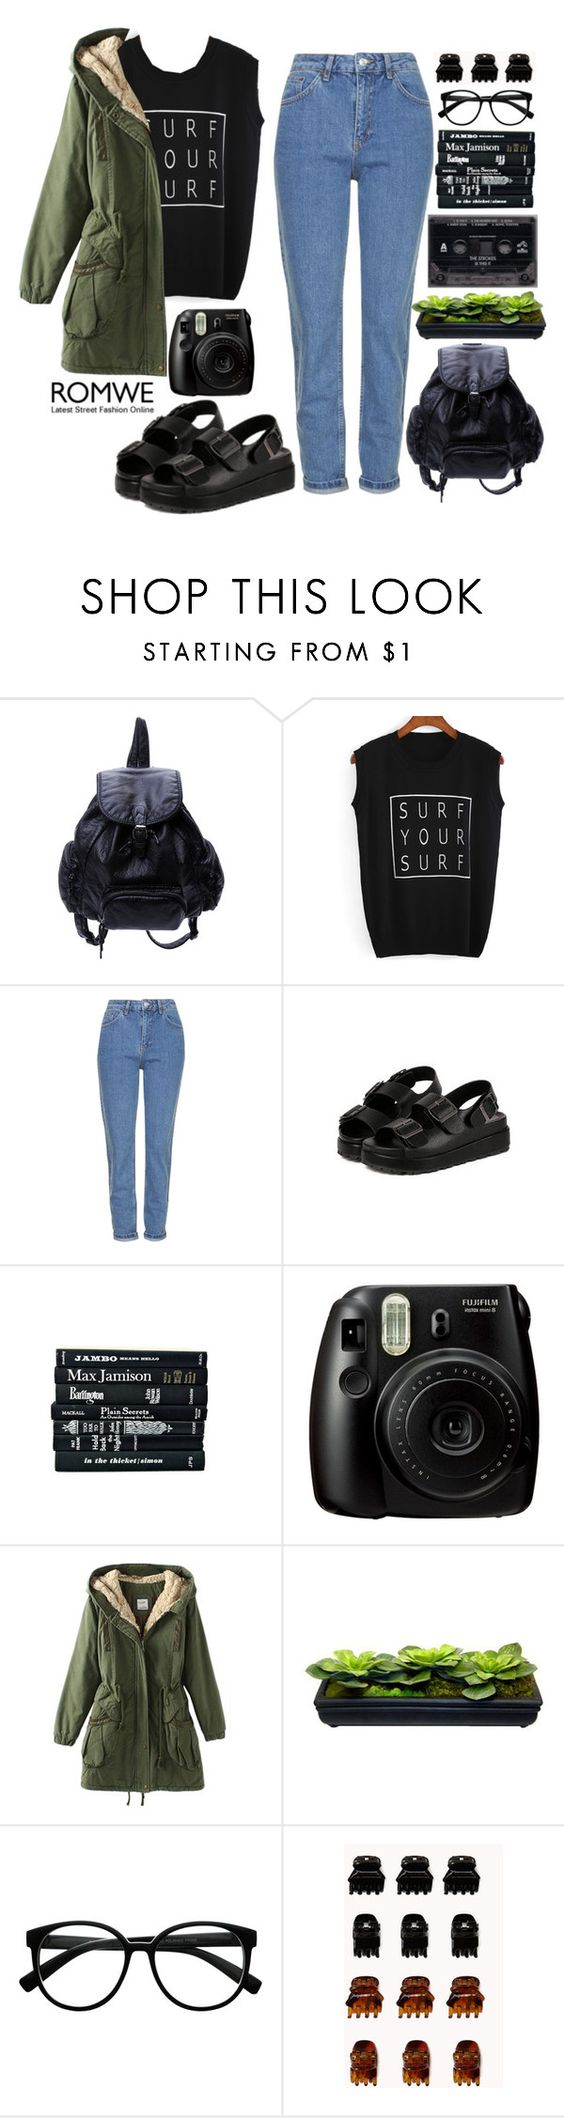 """""""#The Strokes - Under Cover of Darkness"""" by credentovideos ❤ liked on Polyvore featuring Topshop, Retrò and Forever 21"""